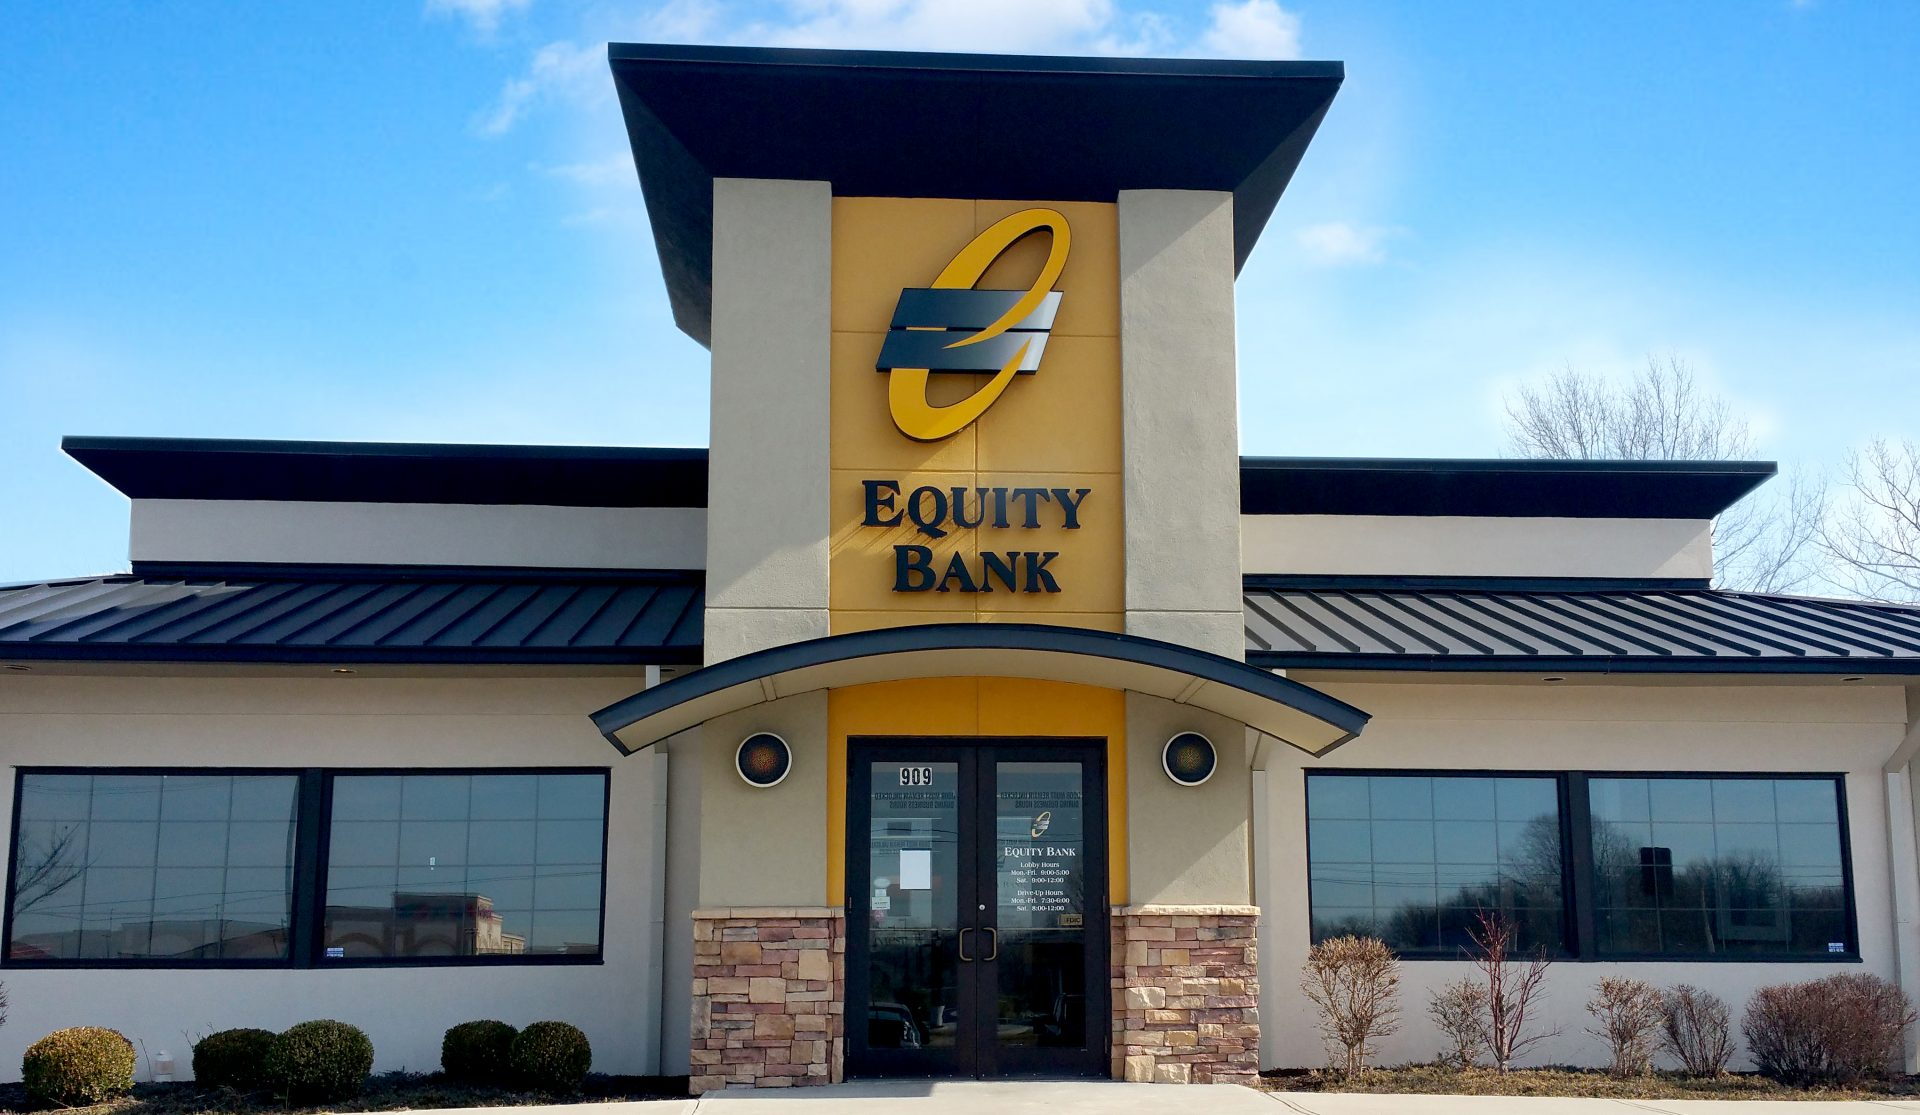 Equity Bank Lee's Summit North branch exterior.